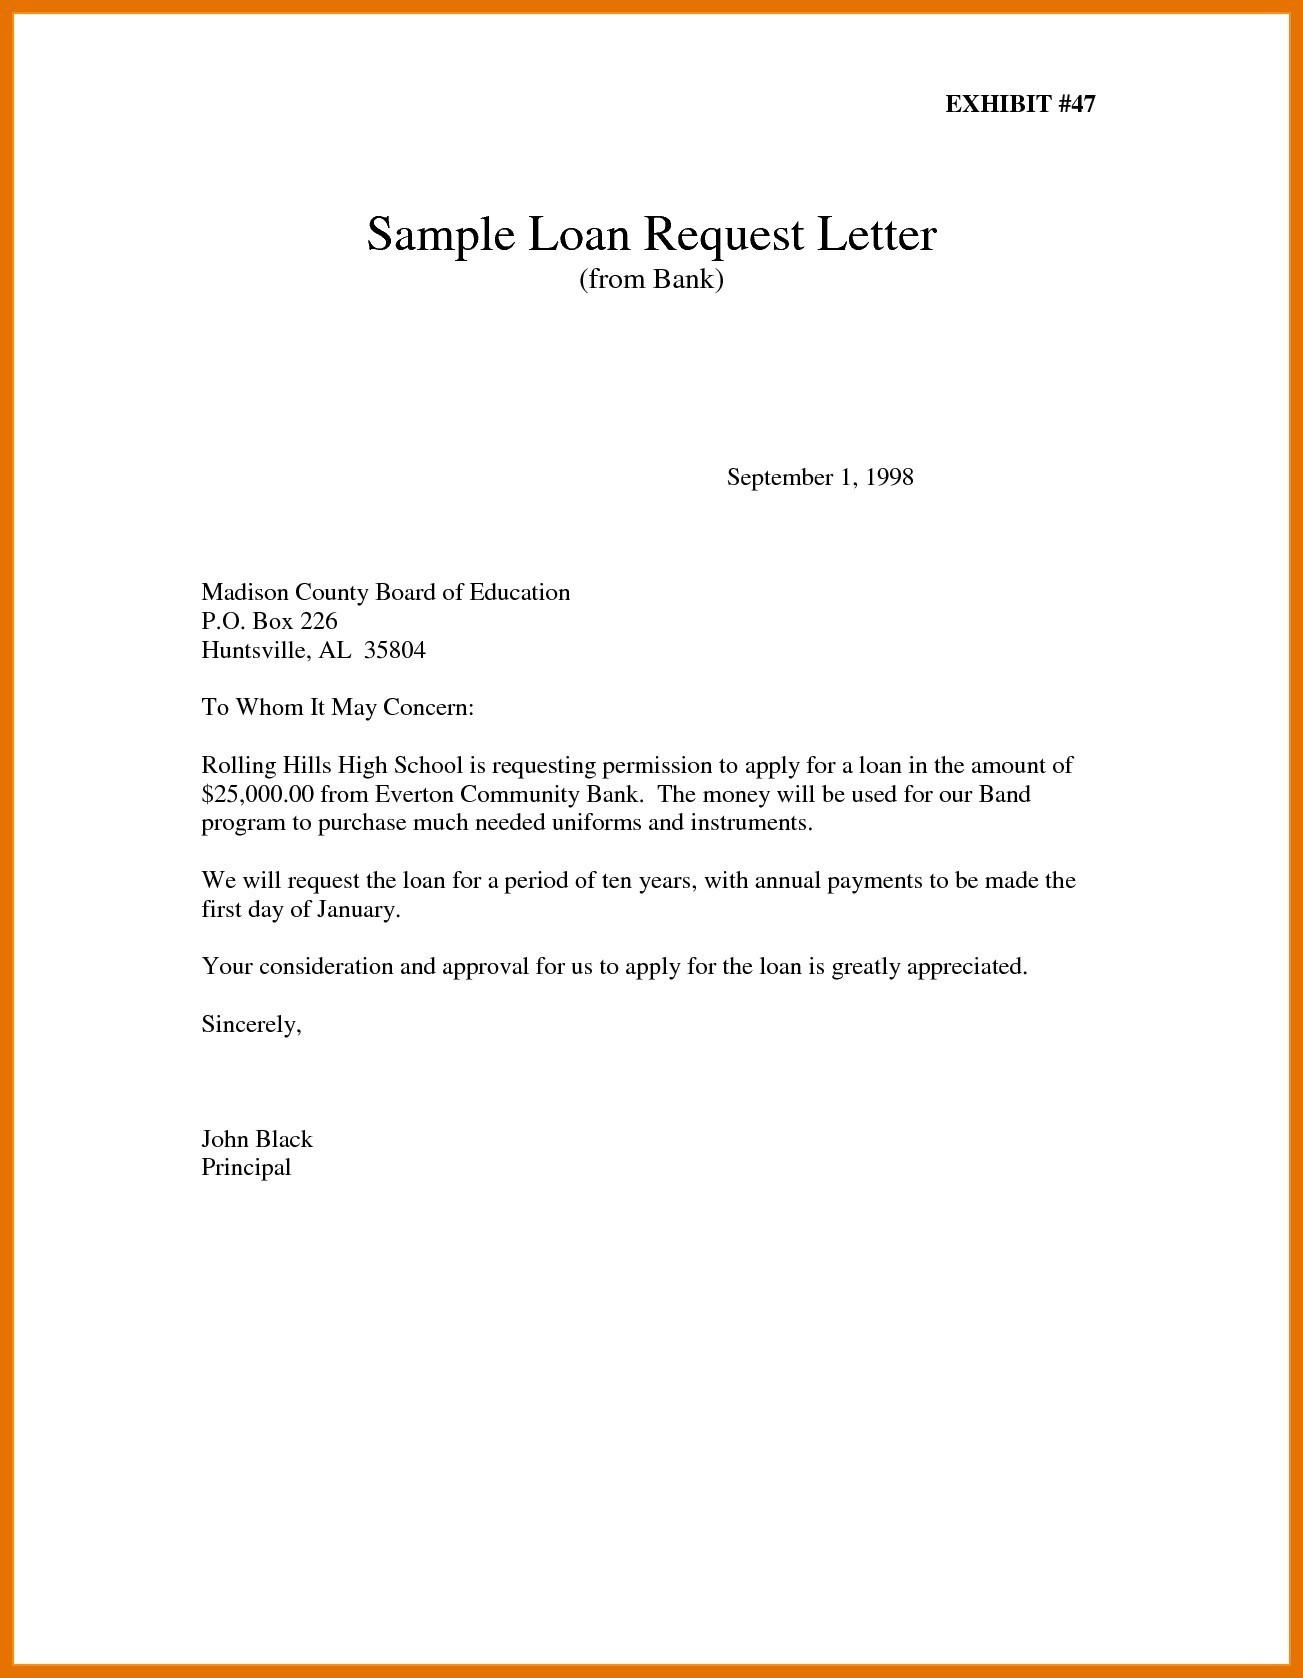 Security Deposit Demand Letter Template - format Request Letter to Bank Manager Refrence Covering Letter